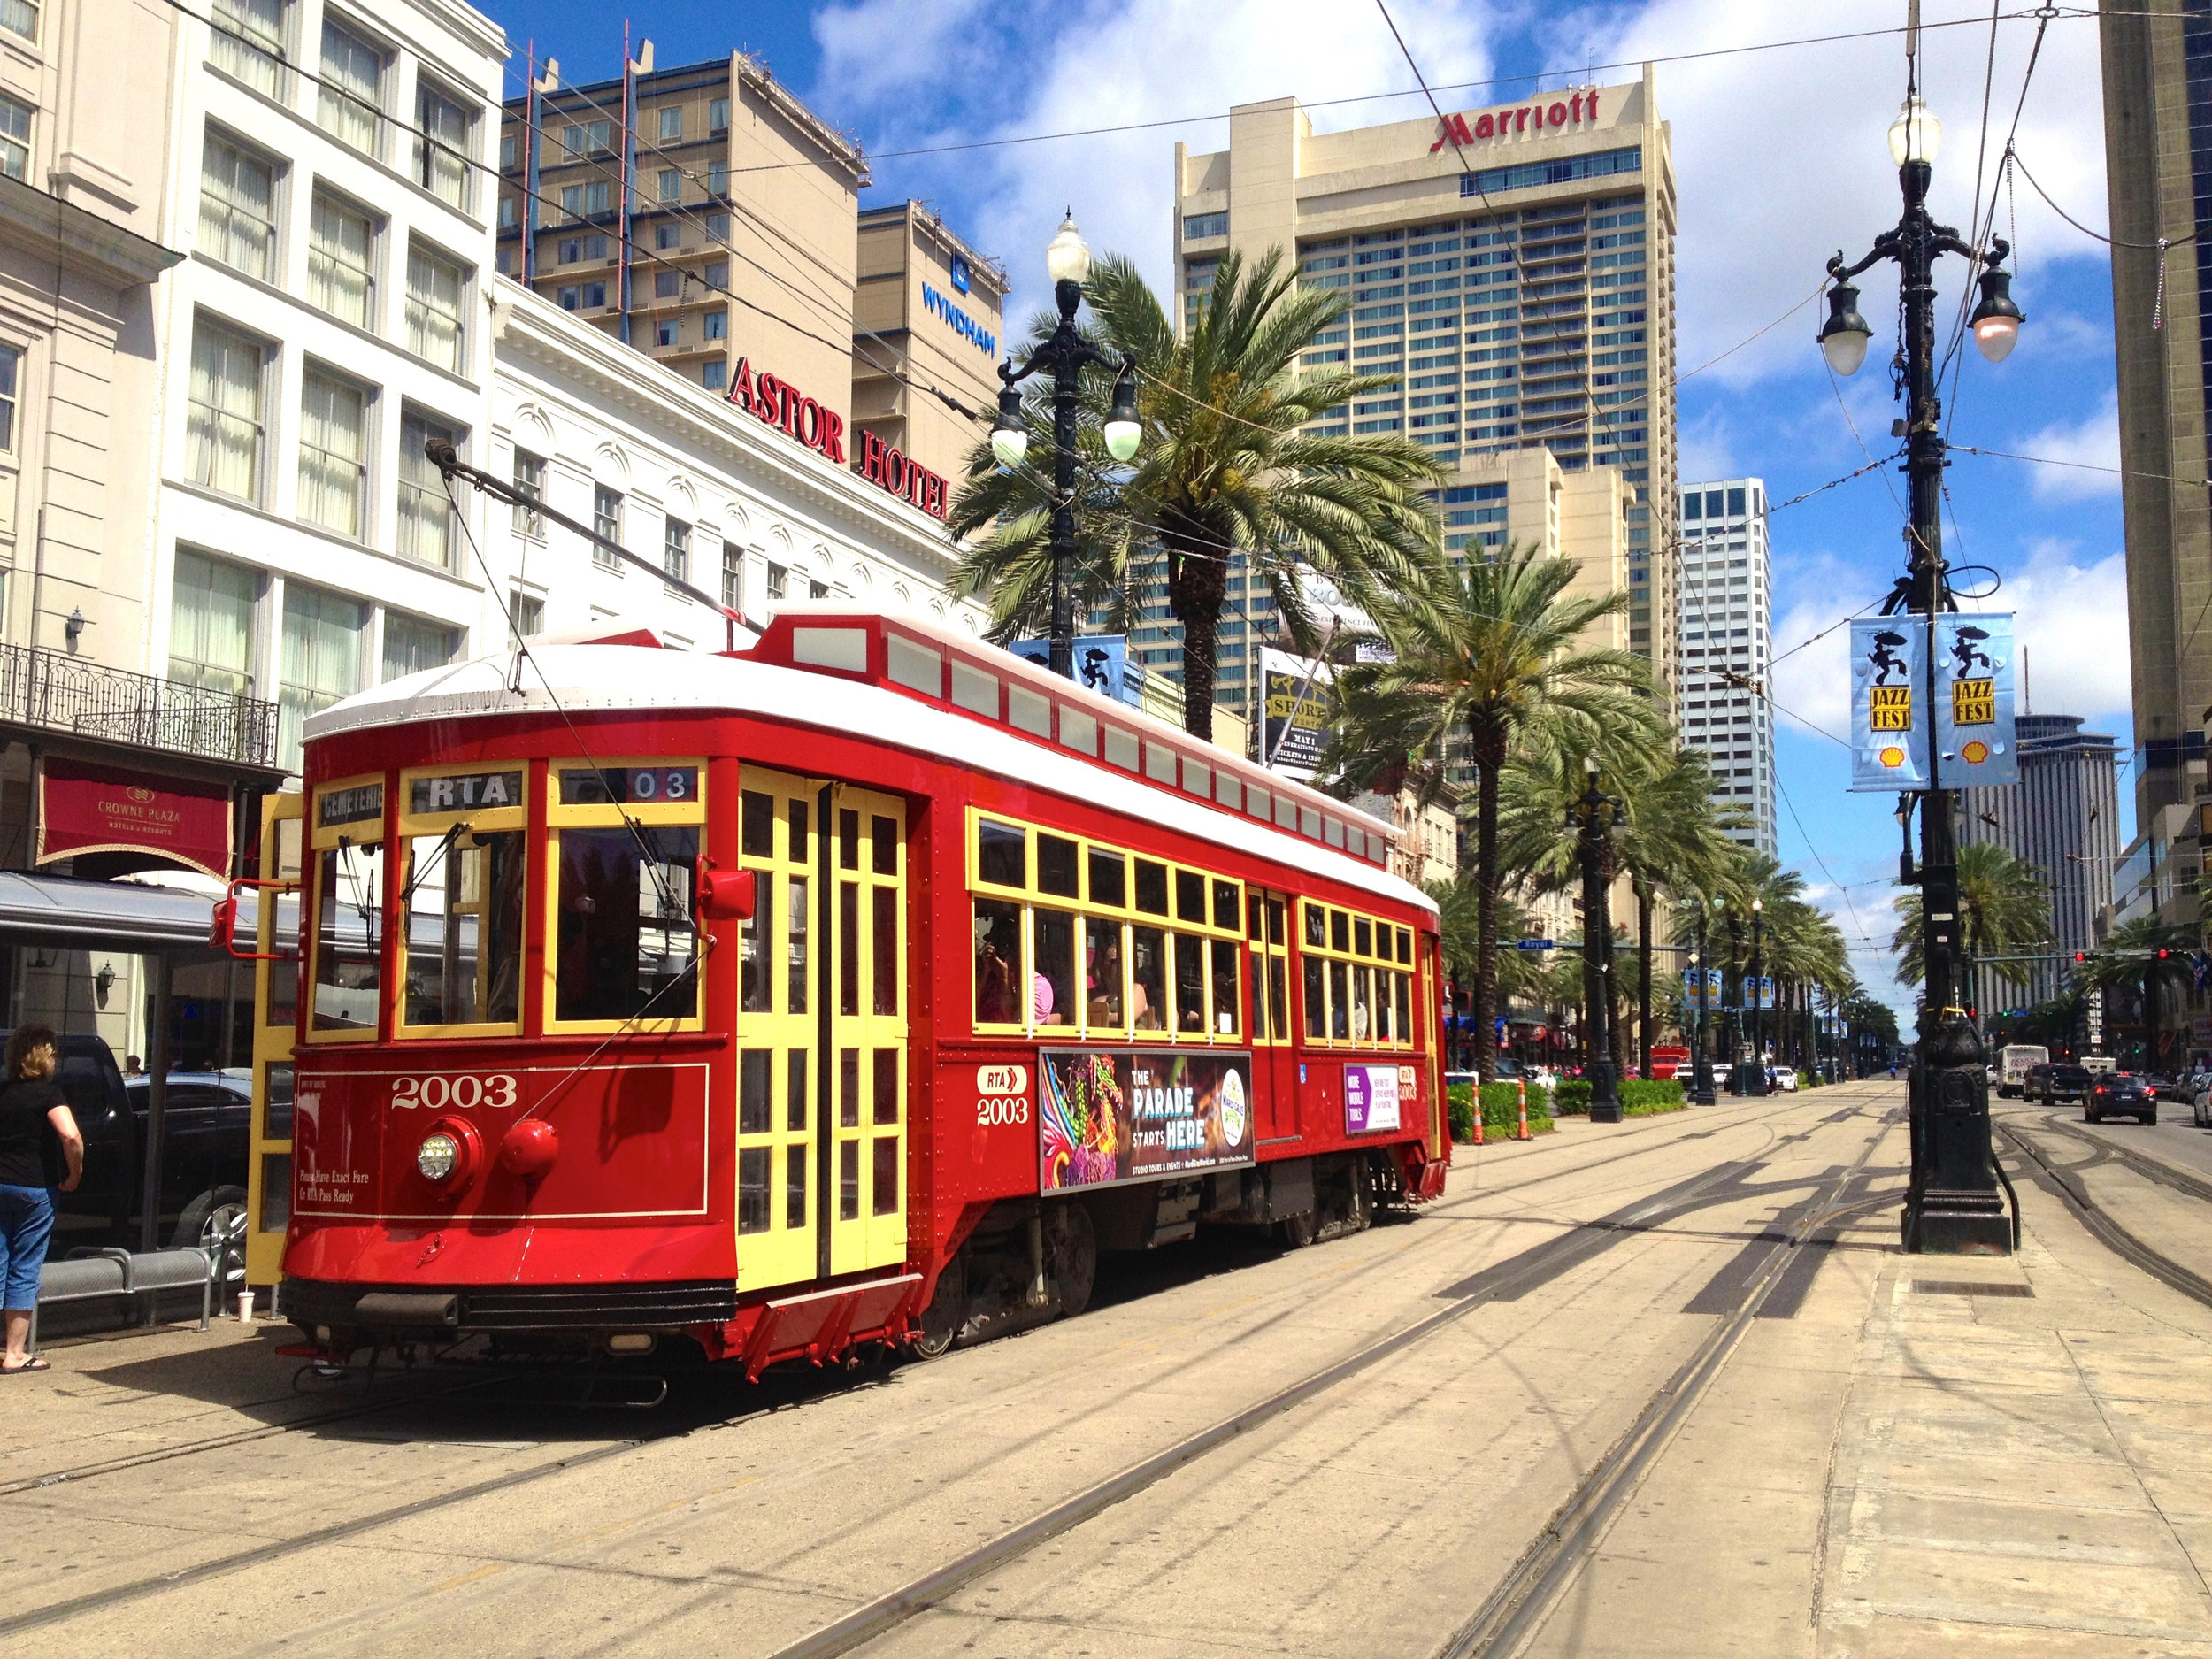 Canal_Streetcar_in_New_Orleans,_Louisiana,_USA.jpg